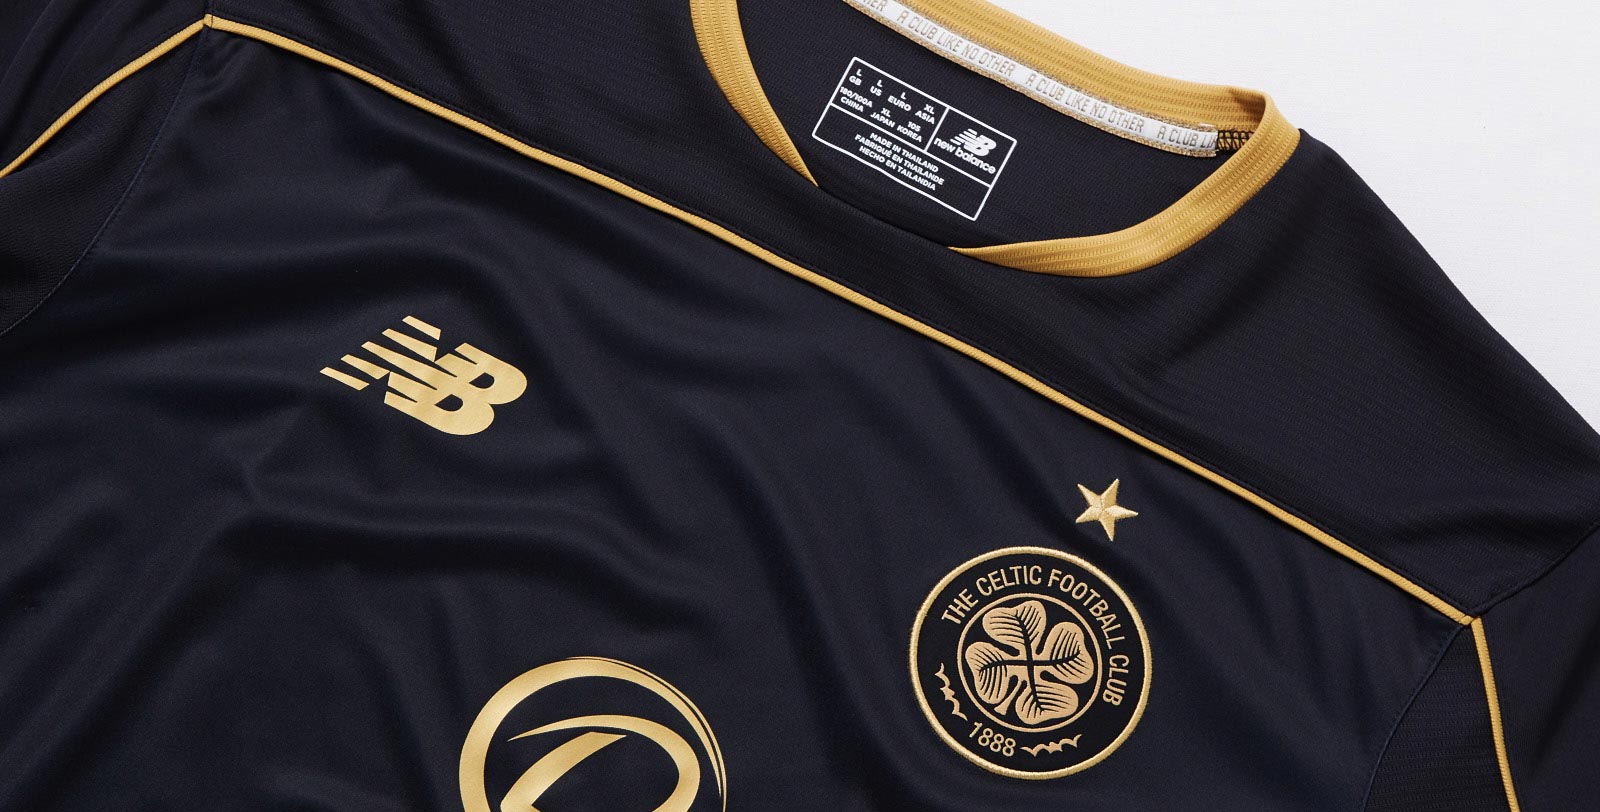 Celtic 2016-17 Away Kit Revealed 9555c4cbb